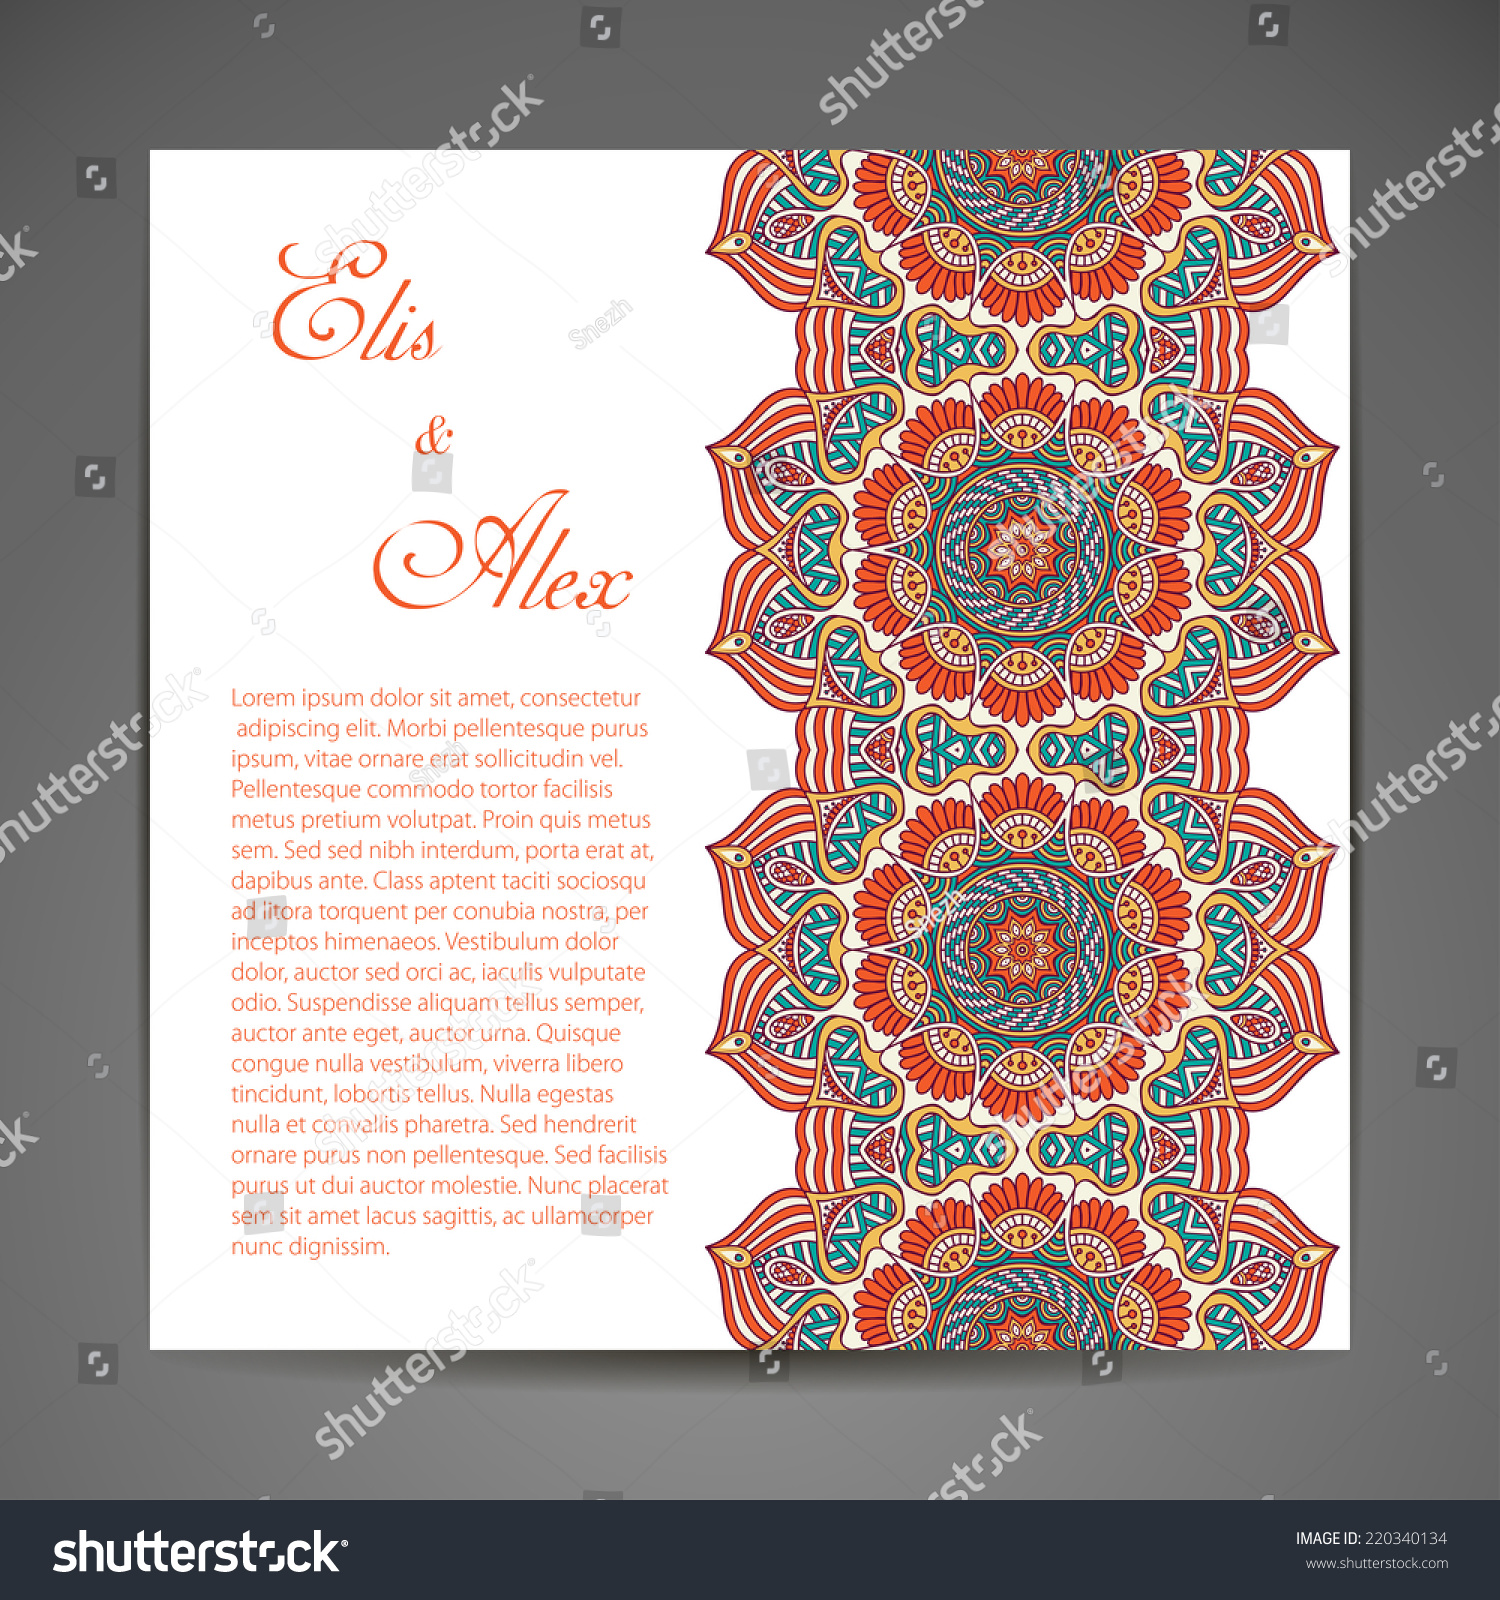 Card wedding invitation round ornament pattern stock vector card or wedding invitation round ornament pattern vintage decorative elements hand drawn background stopboris Images